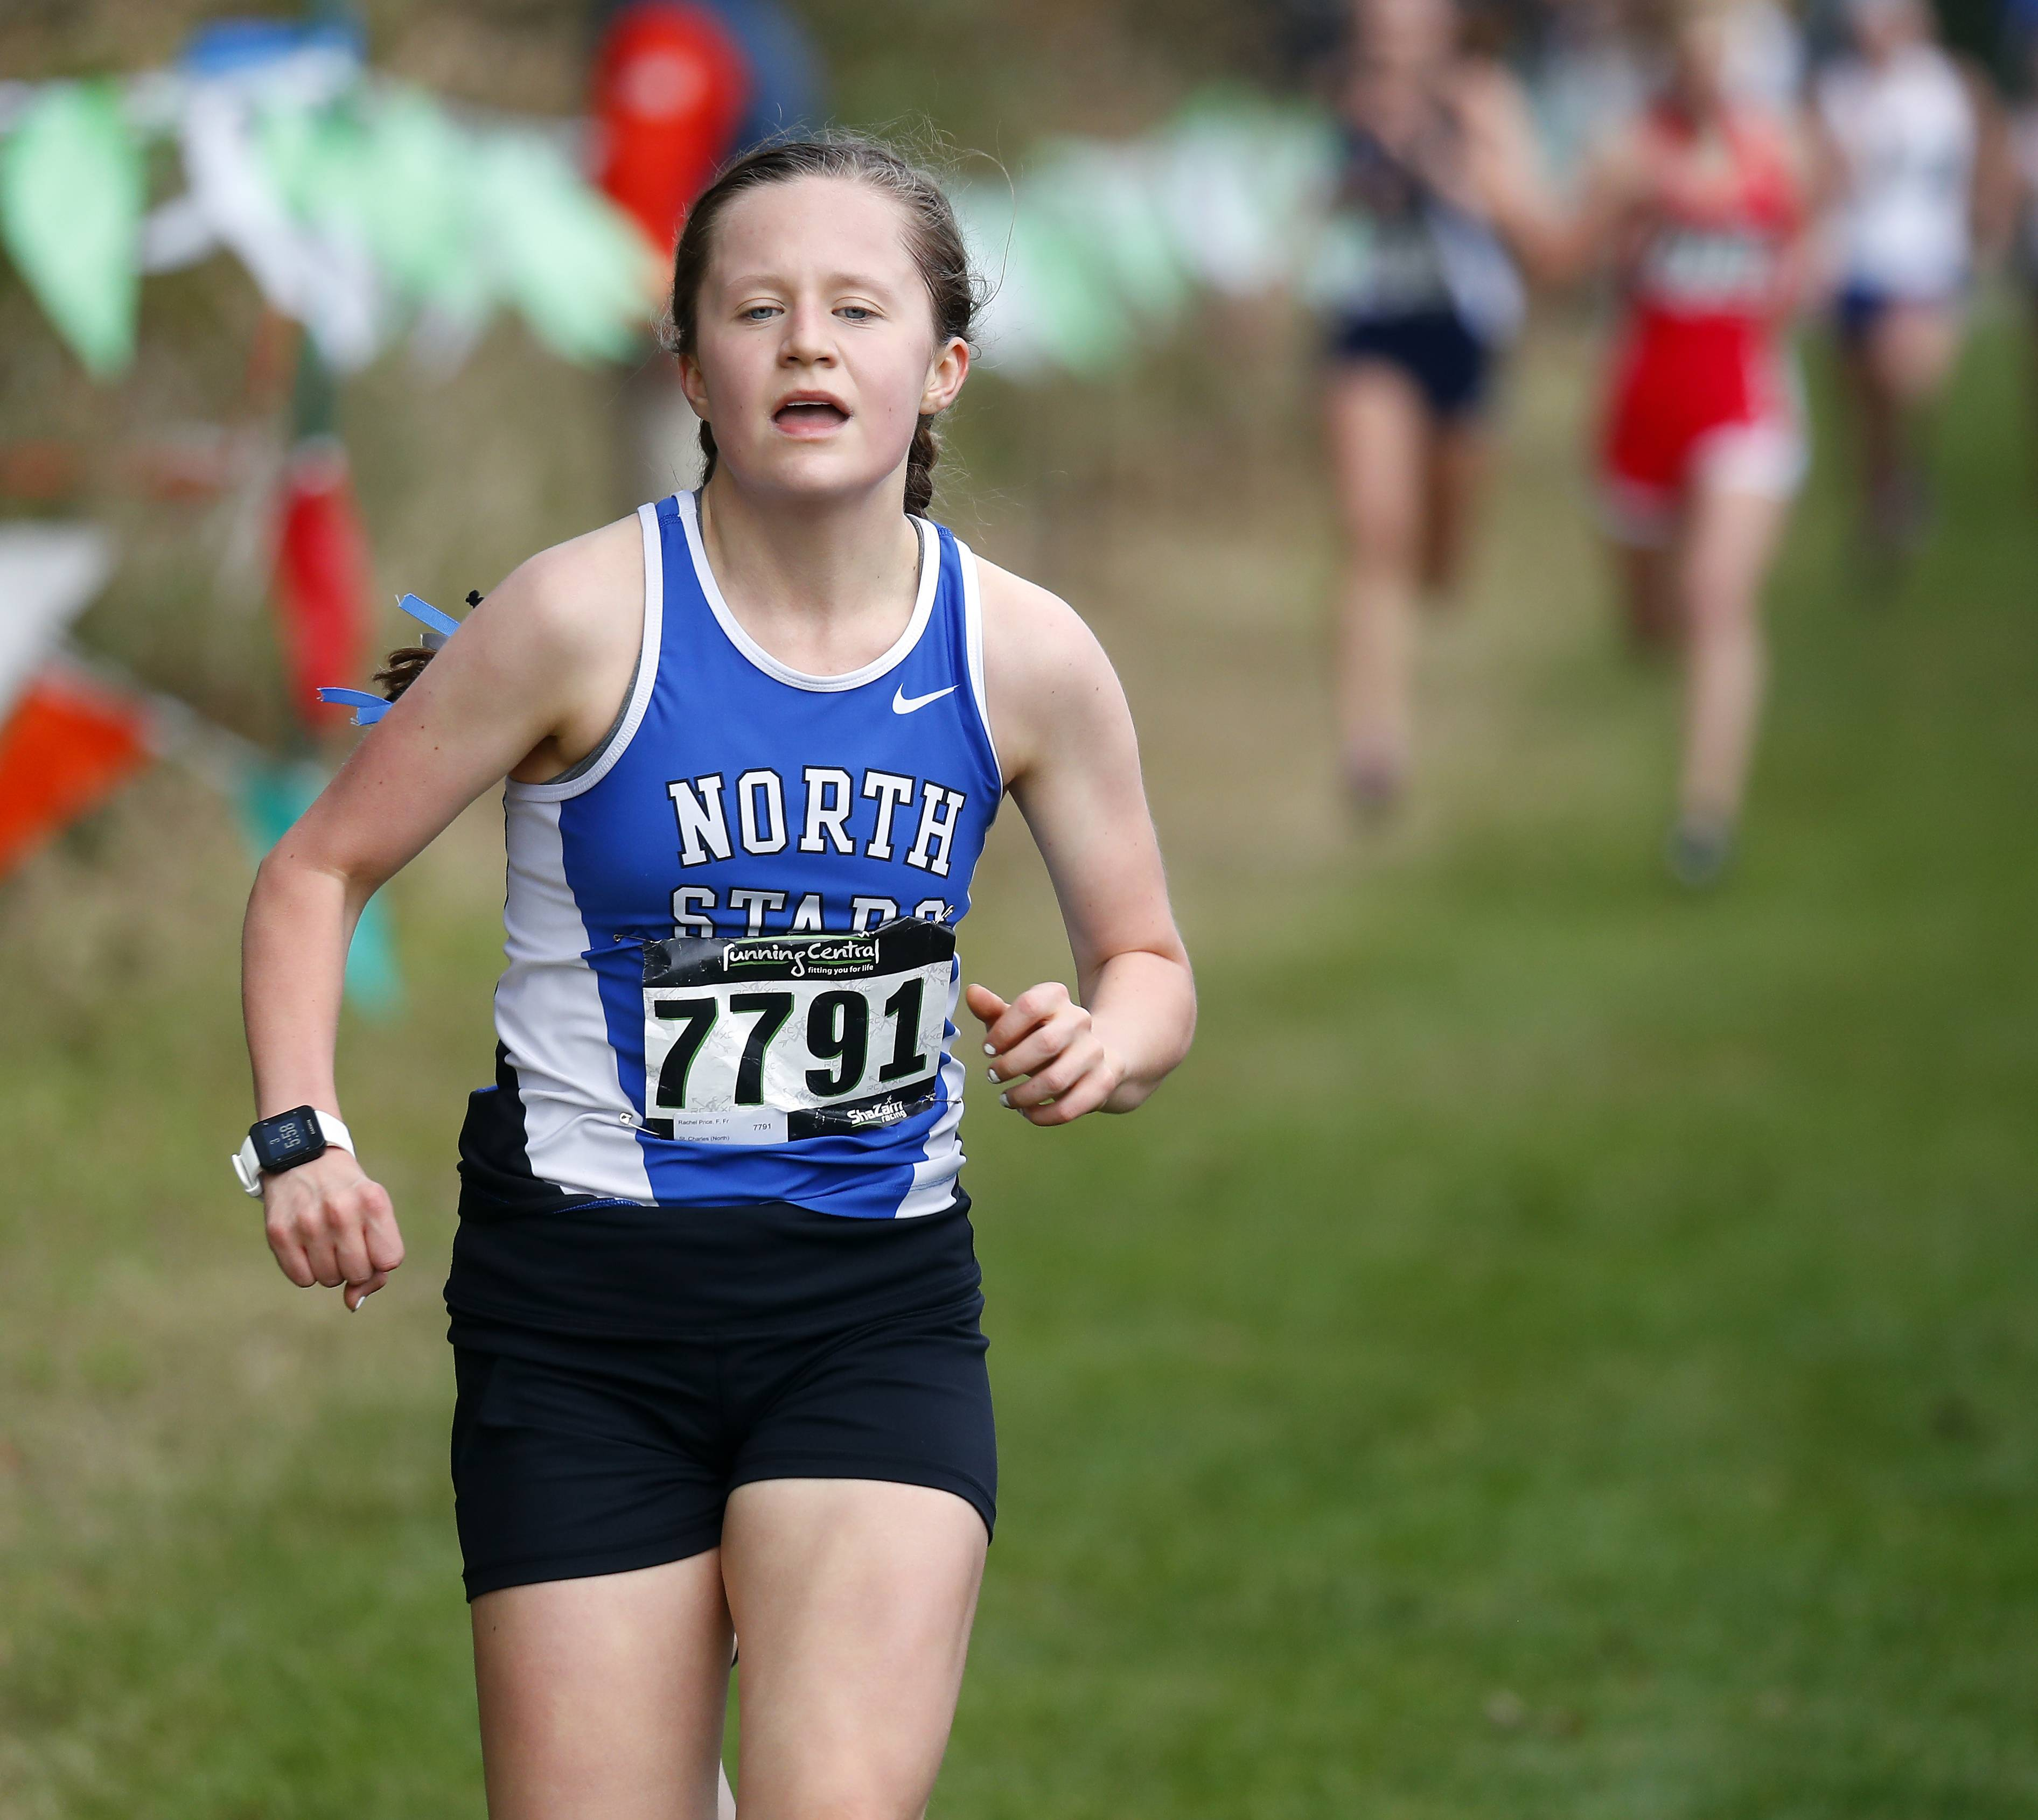 Rachel Price, of St. Charles North Saturday during the Waubonsie Valley cross country sectional in Aurora.